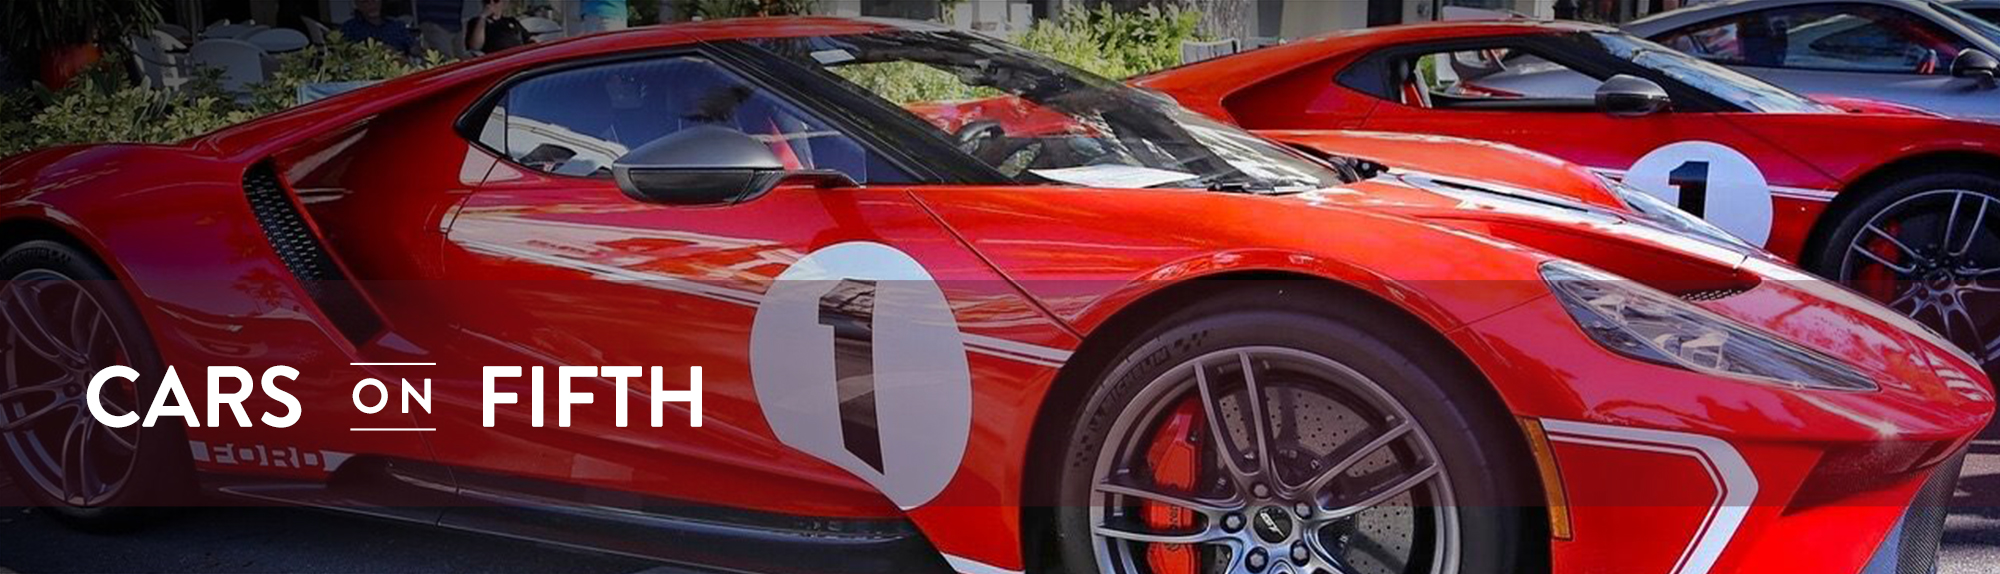 Ford GT40 at Car Show